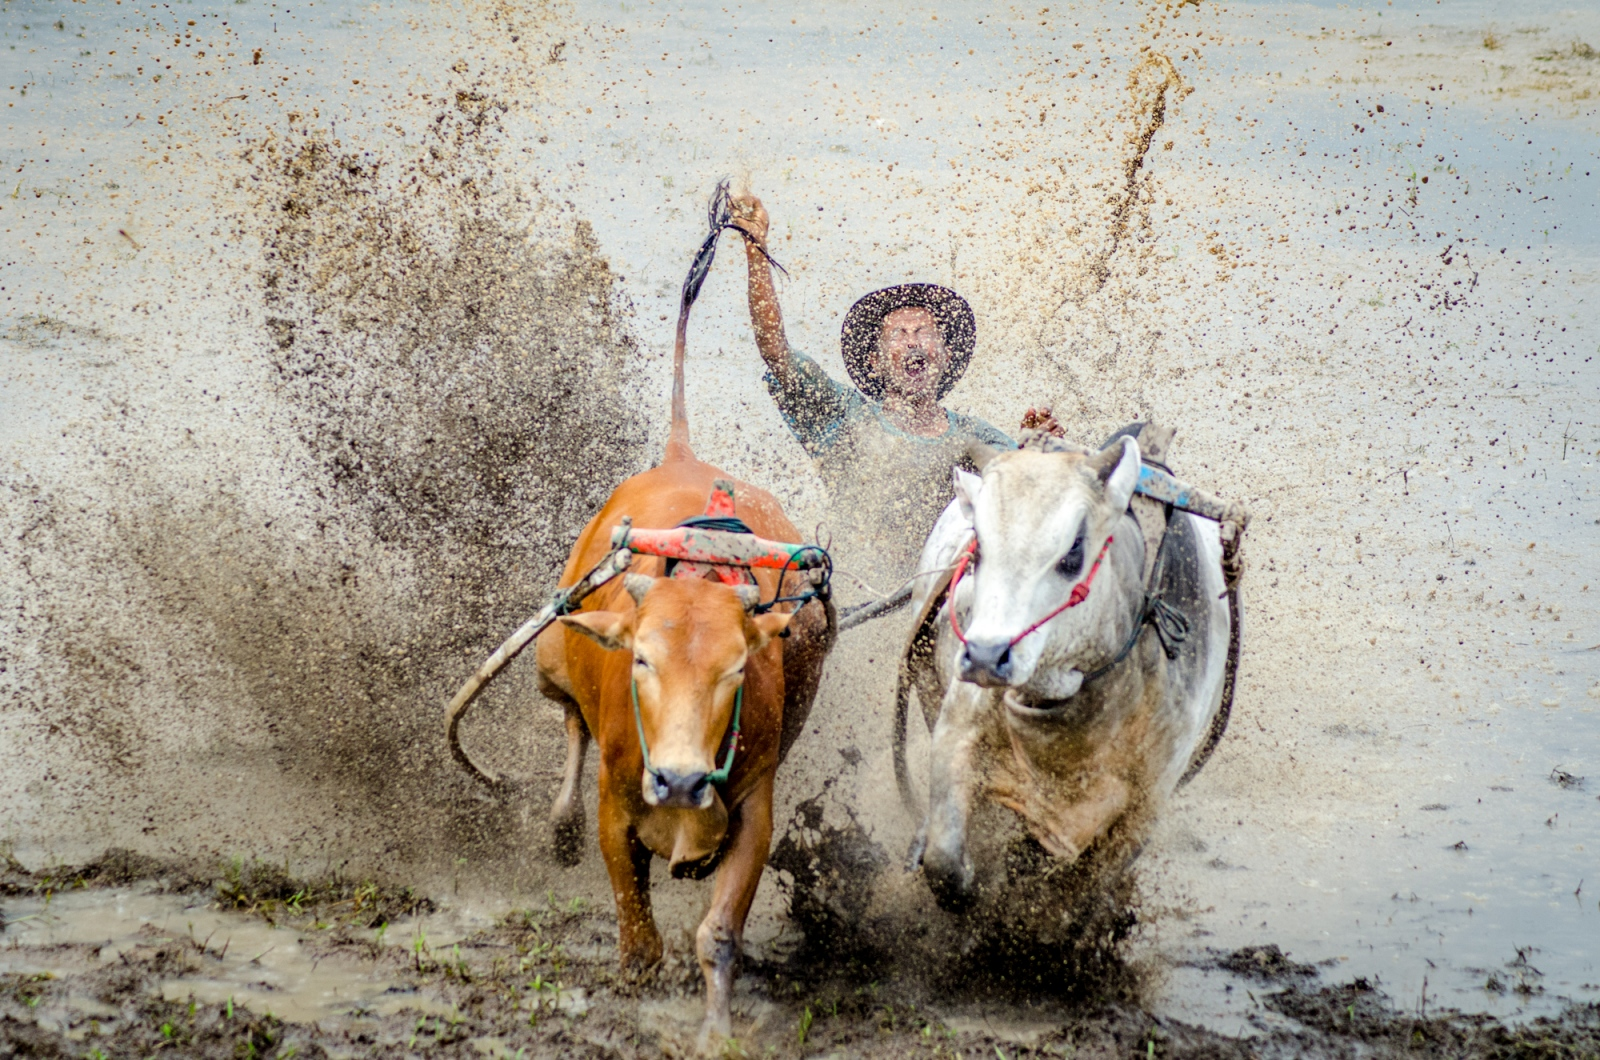 A jockey flails as he falls from behind two powerful, speeding bulls in the West Sumatran bull races, Pacu Jawi. This Indonesian tradition brings communities together at the end of a harvest season to race bulls, going for flair and time upright. This messy tradition also happens to help turn the fields for the host farmers.